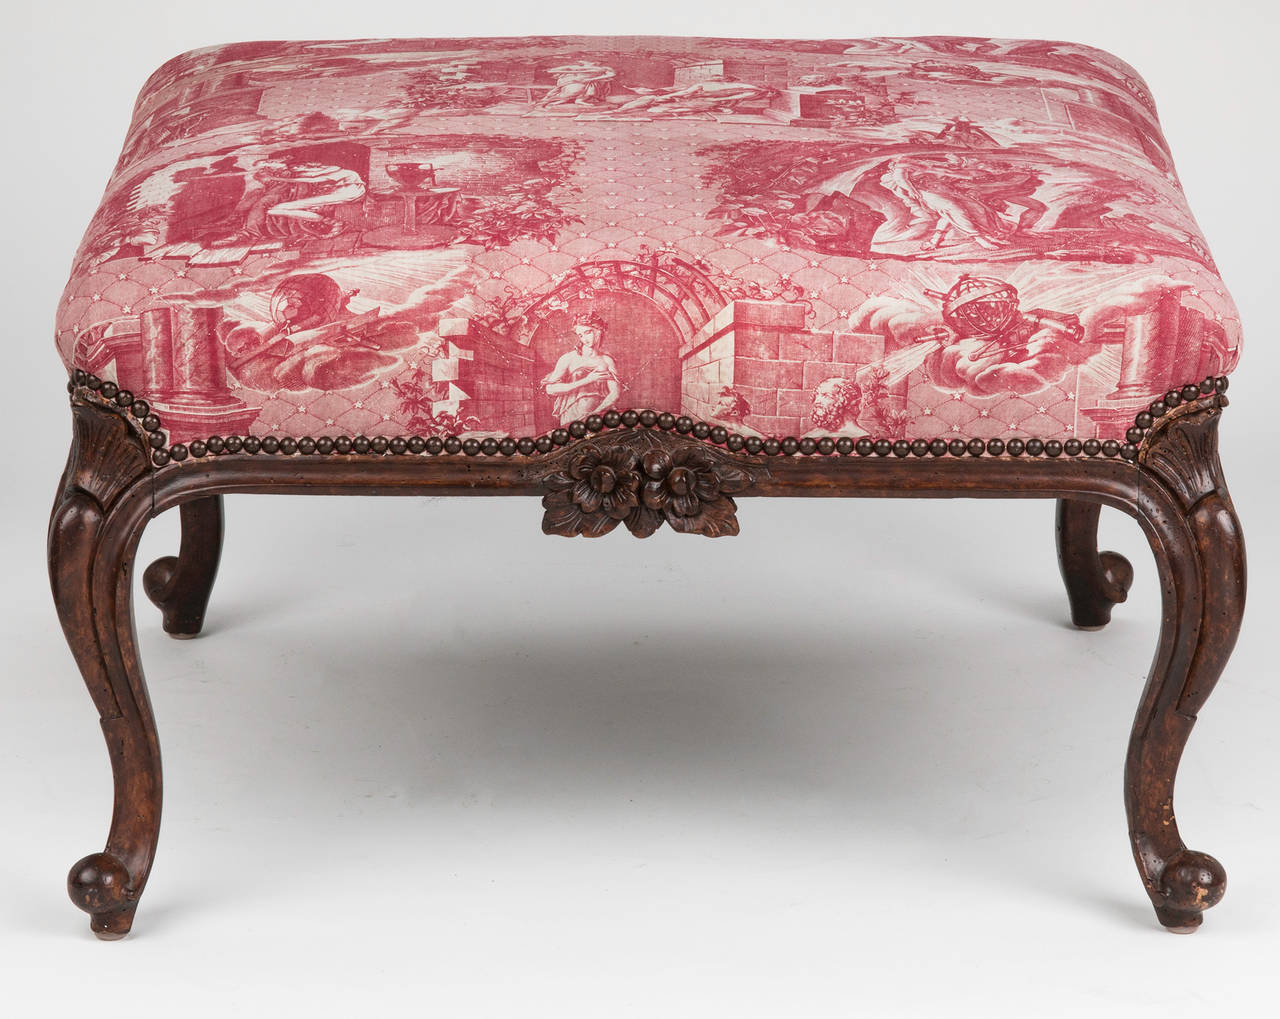 French Ottoman c1850 overscale large french ottoman or bench for sale at 1stdibs 5327 by xevi.us